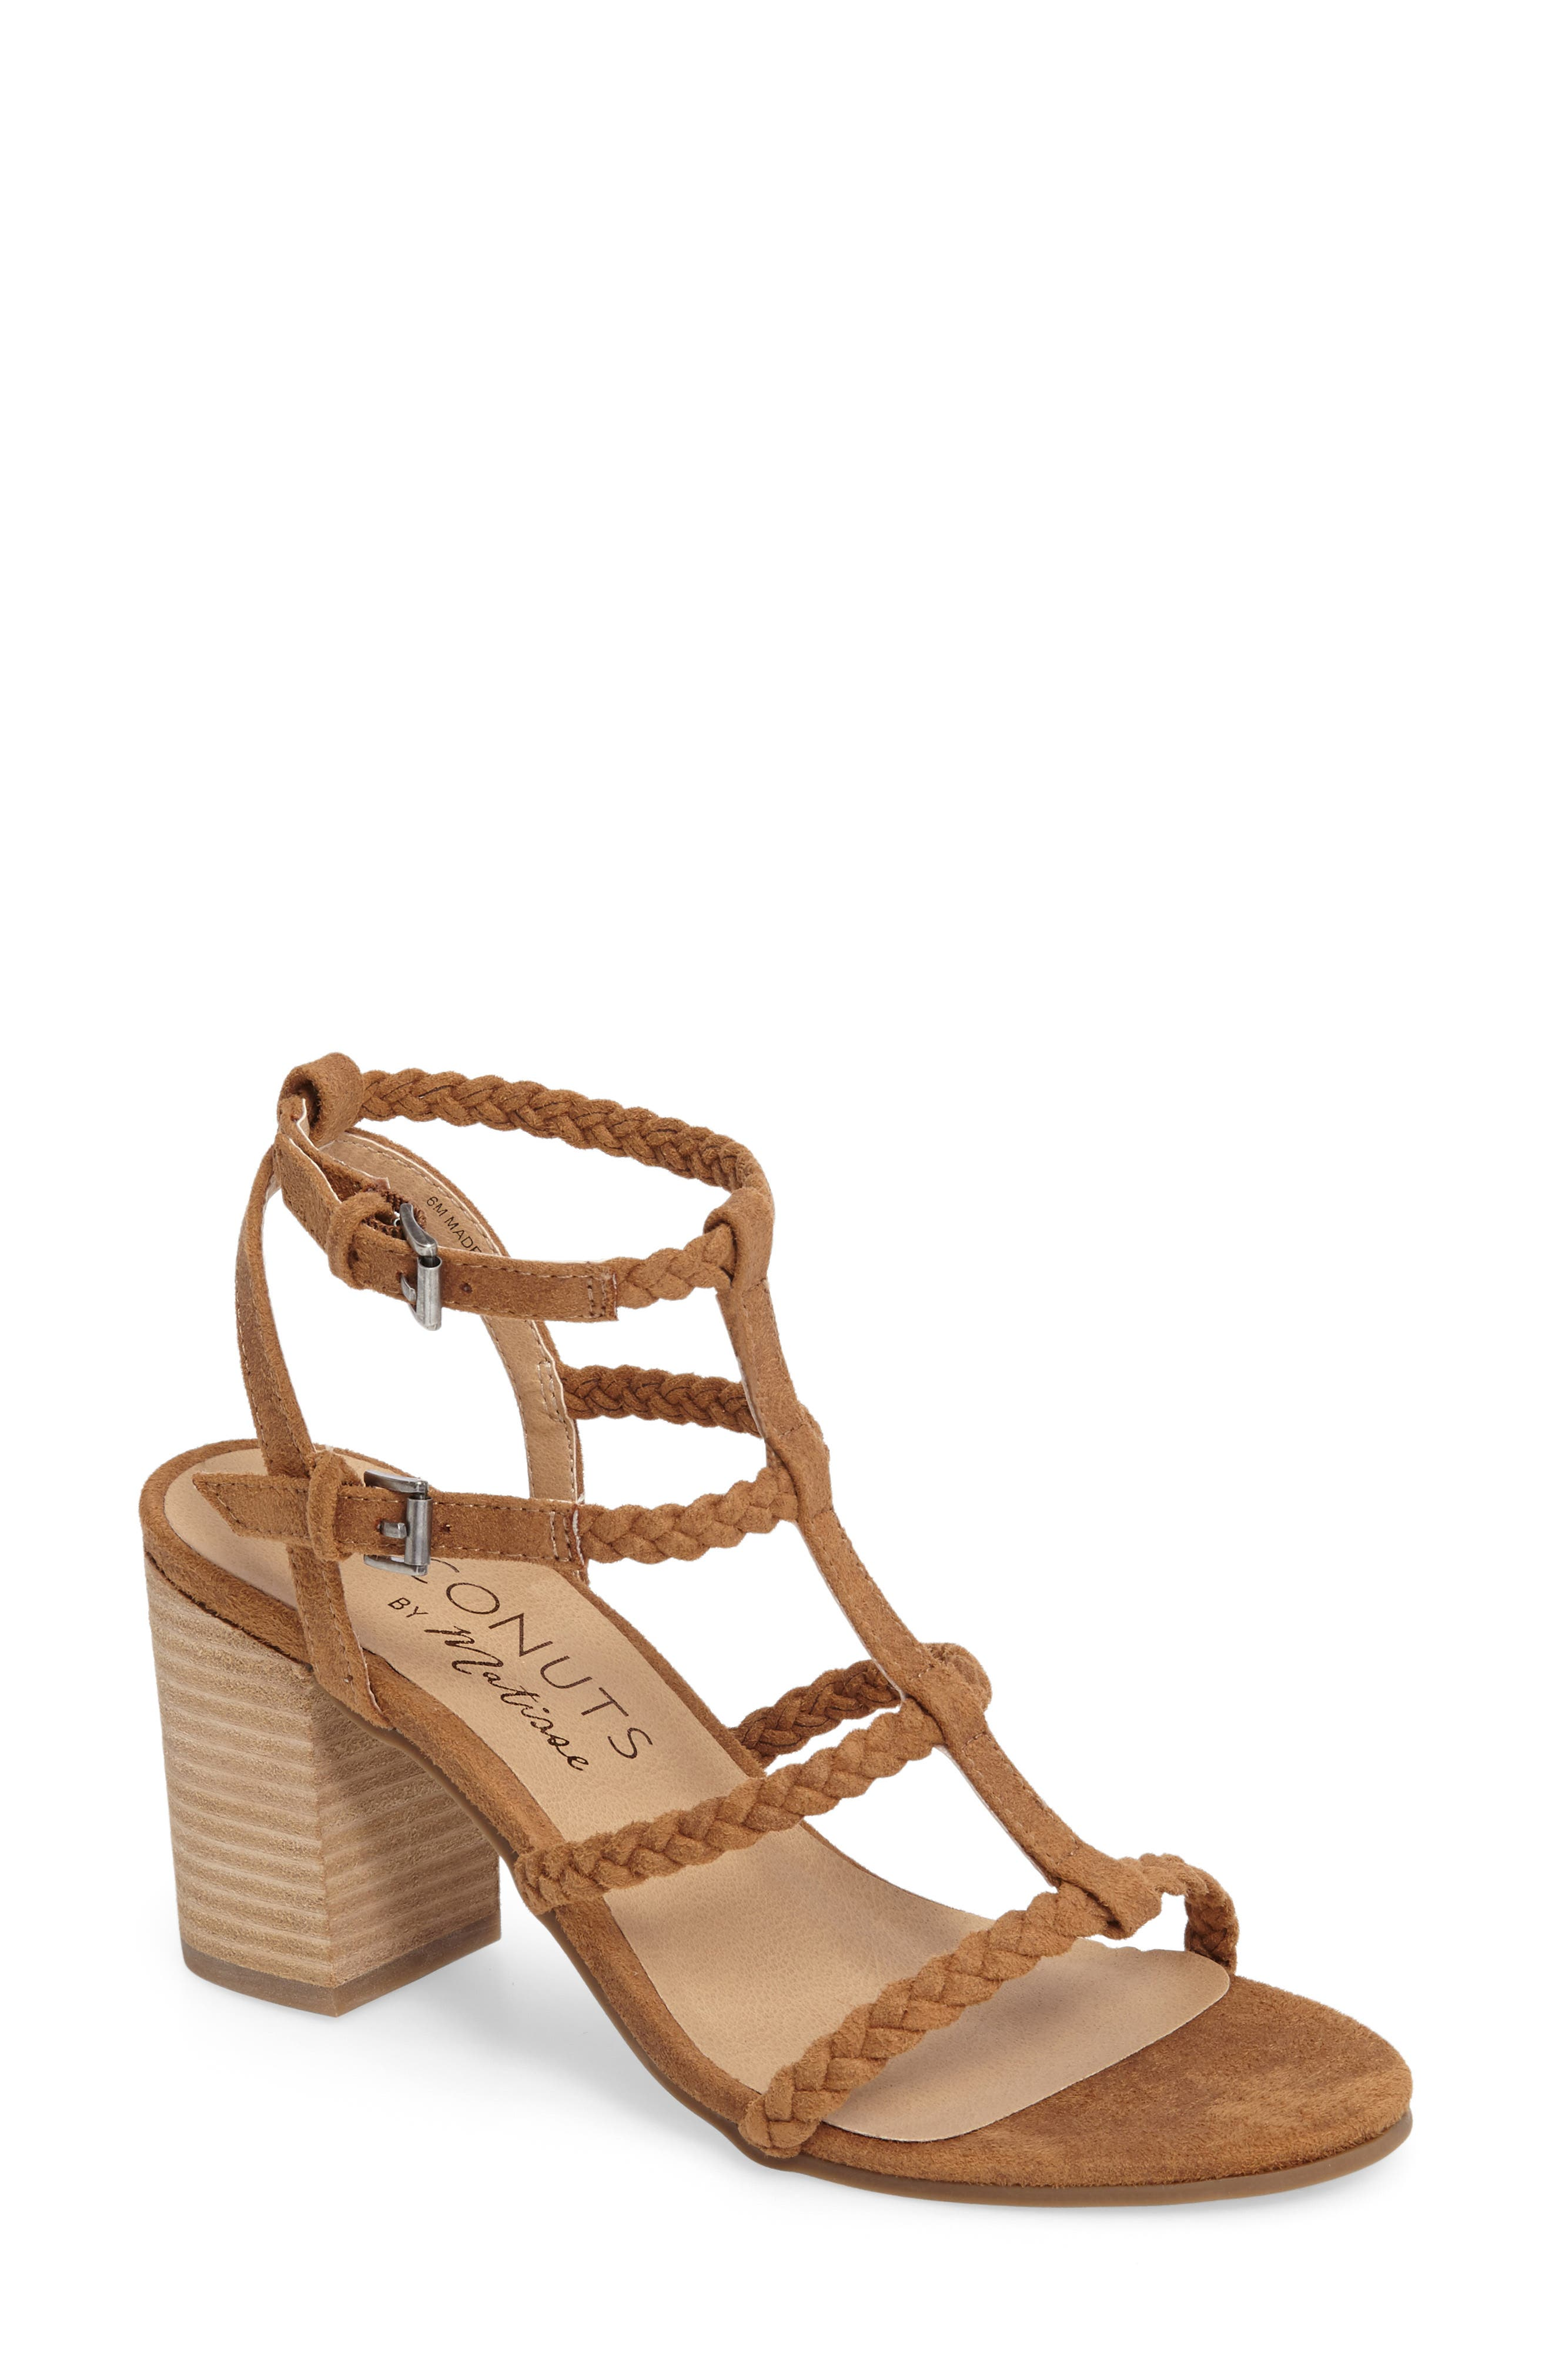 Coconuts by Matisse Cora Sandal,                         Main,                         color, 287